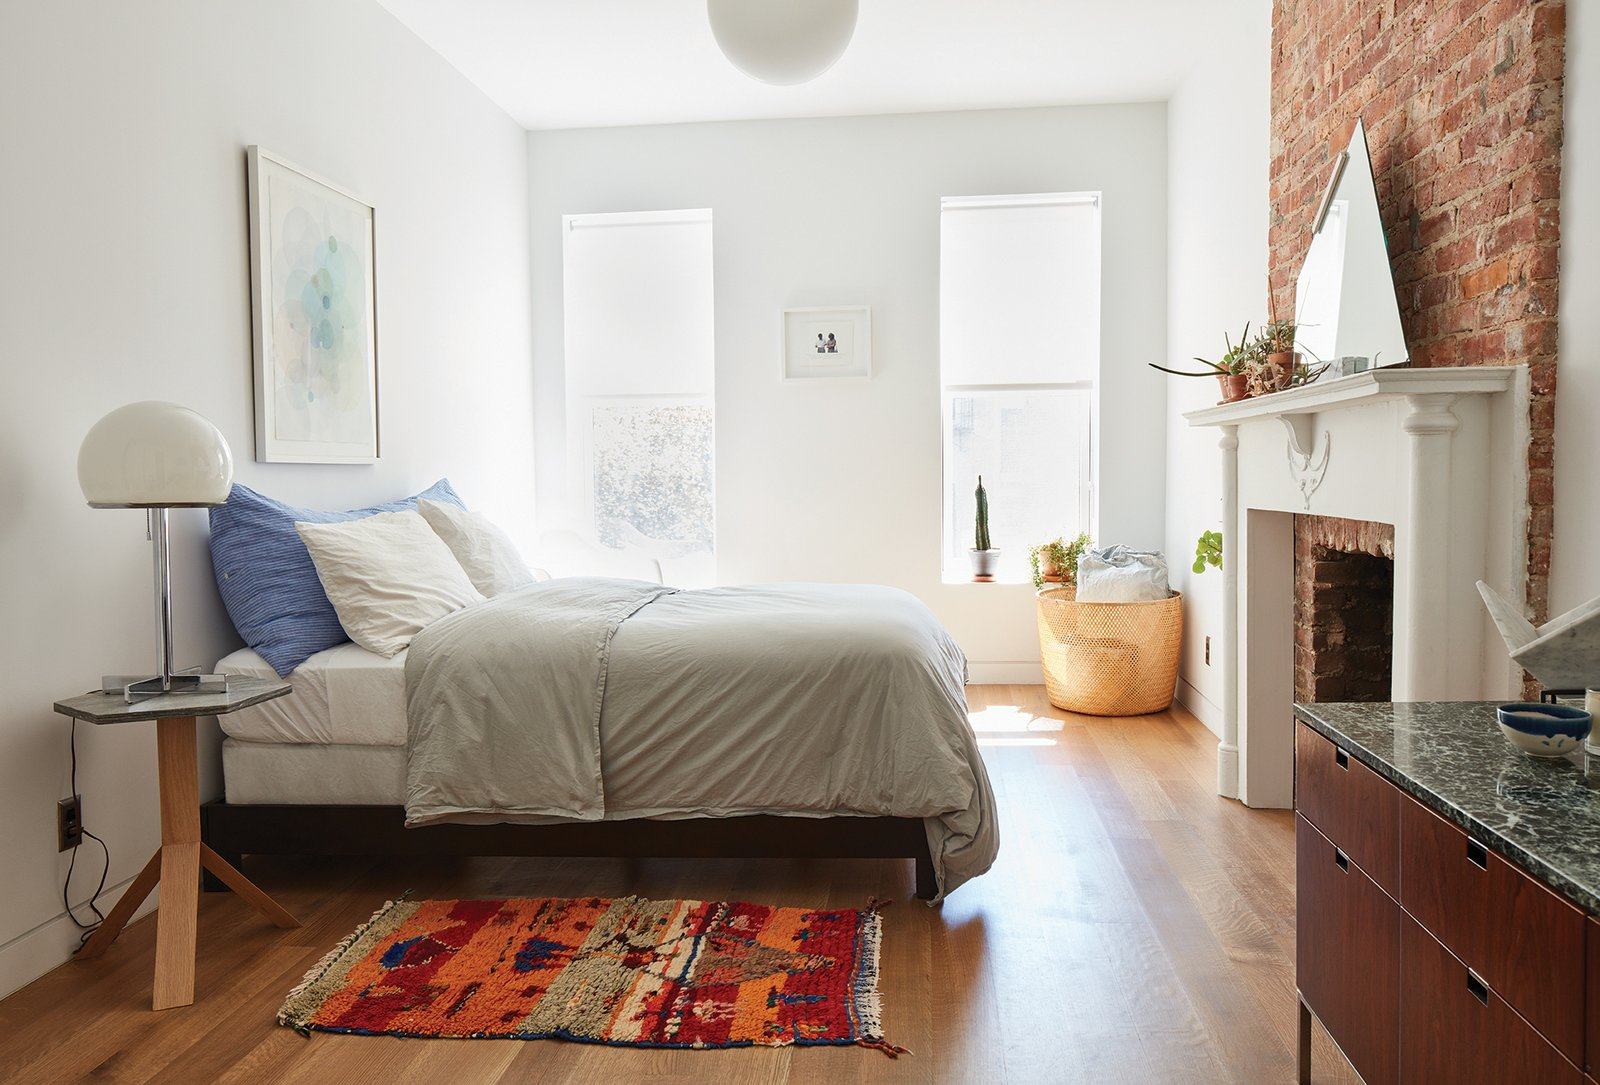 """Bedroom, Pendant, Bed, Table, and Medium Hardwood """"We put a lot of energy—and at least half our investment—into the bones of the building because we intend to be here for a long time,"""" says Lauren Snyder, who resuscitated an aging home alongside her husband, architect Keith Burns. They used simple, basic materials like plaster, brick, and wood throughout to keep it feeling honest, they said.  Best Bedroom Bed Pendant Table Photos from Forever Changes"""